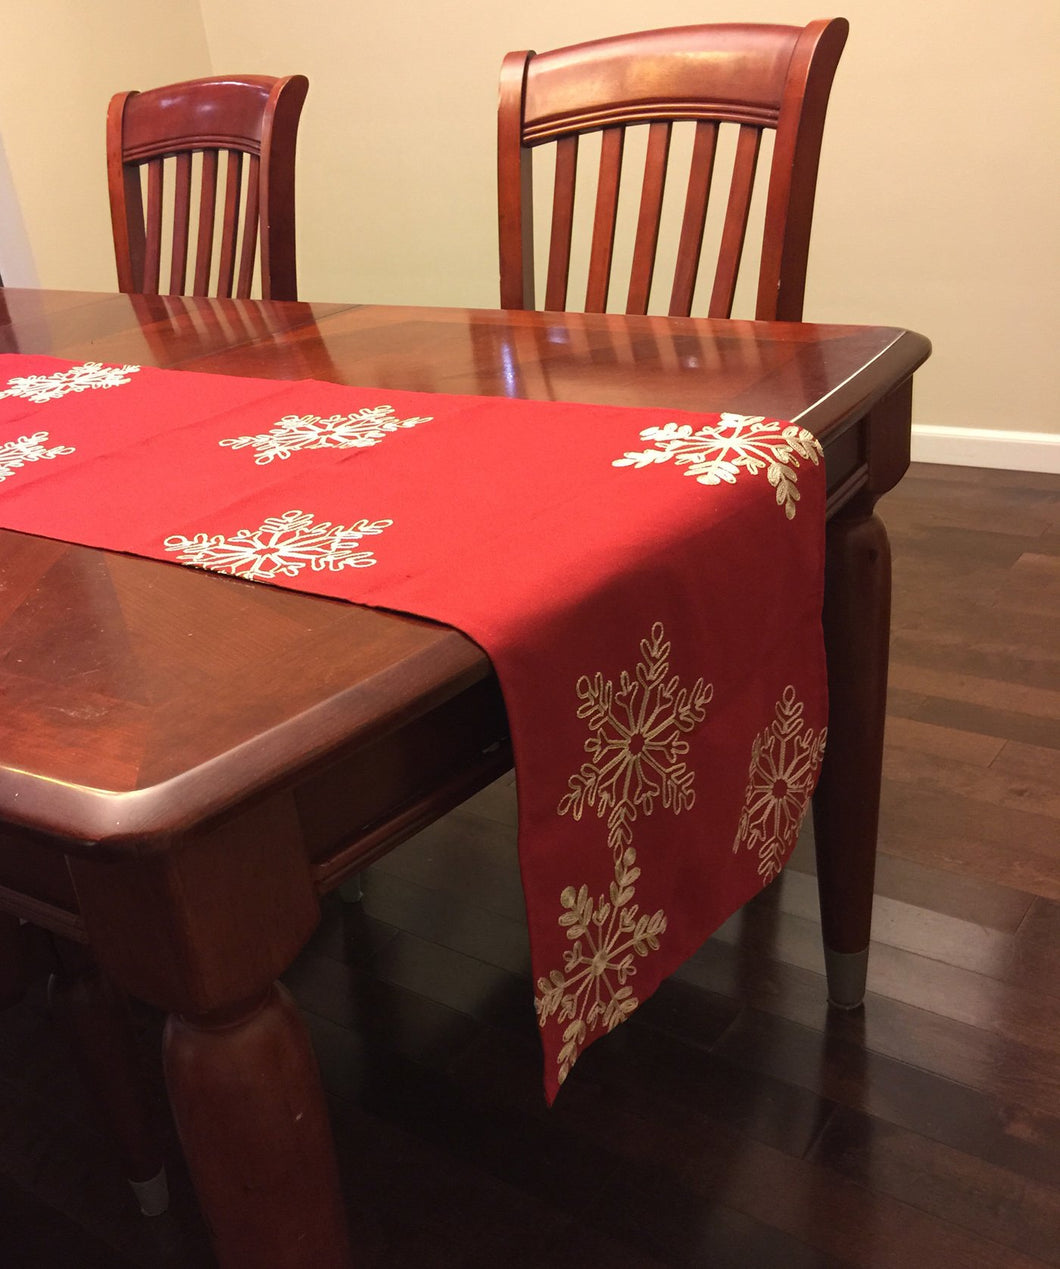 Embroidered White Snowflake Table Runner Holiday Christmas Red Table Cloth 16